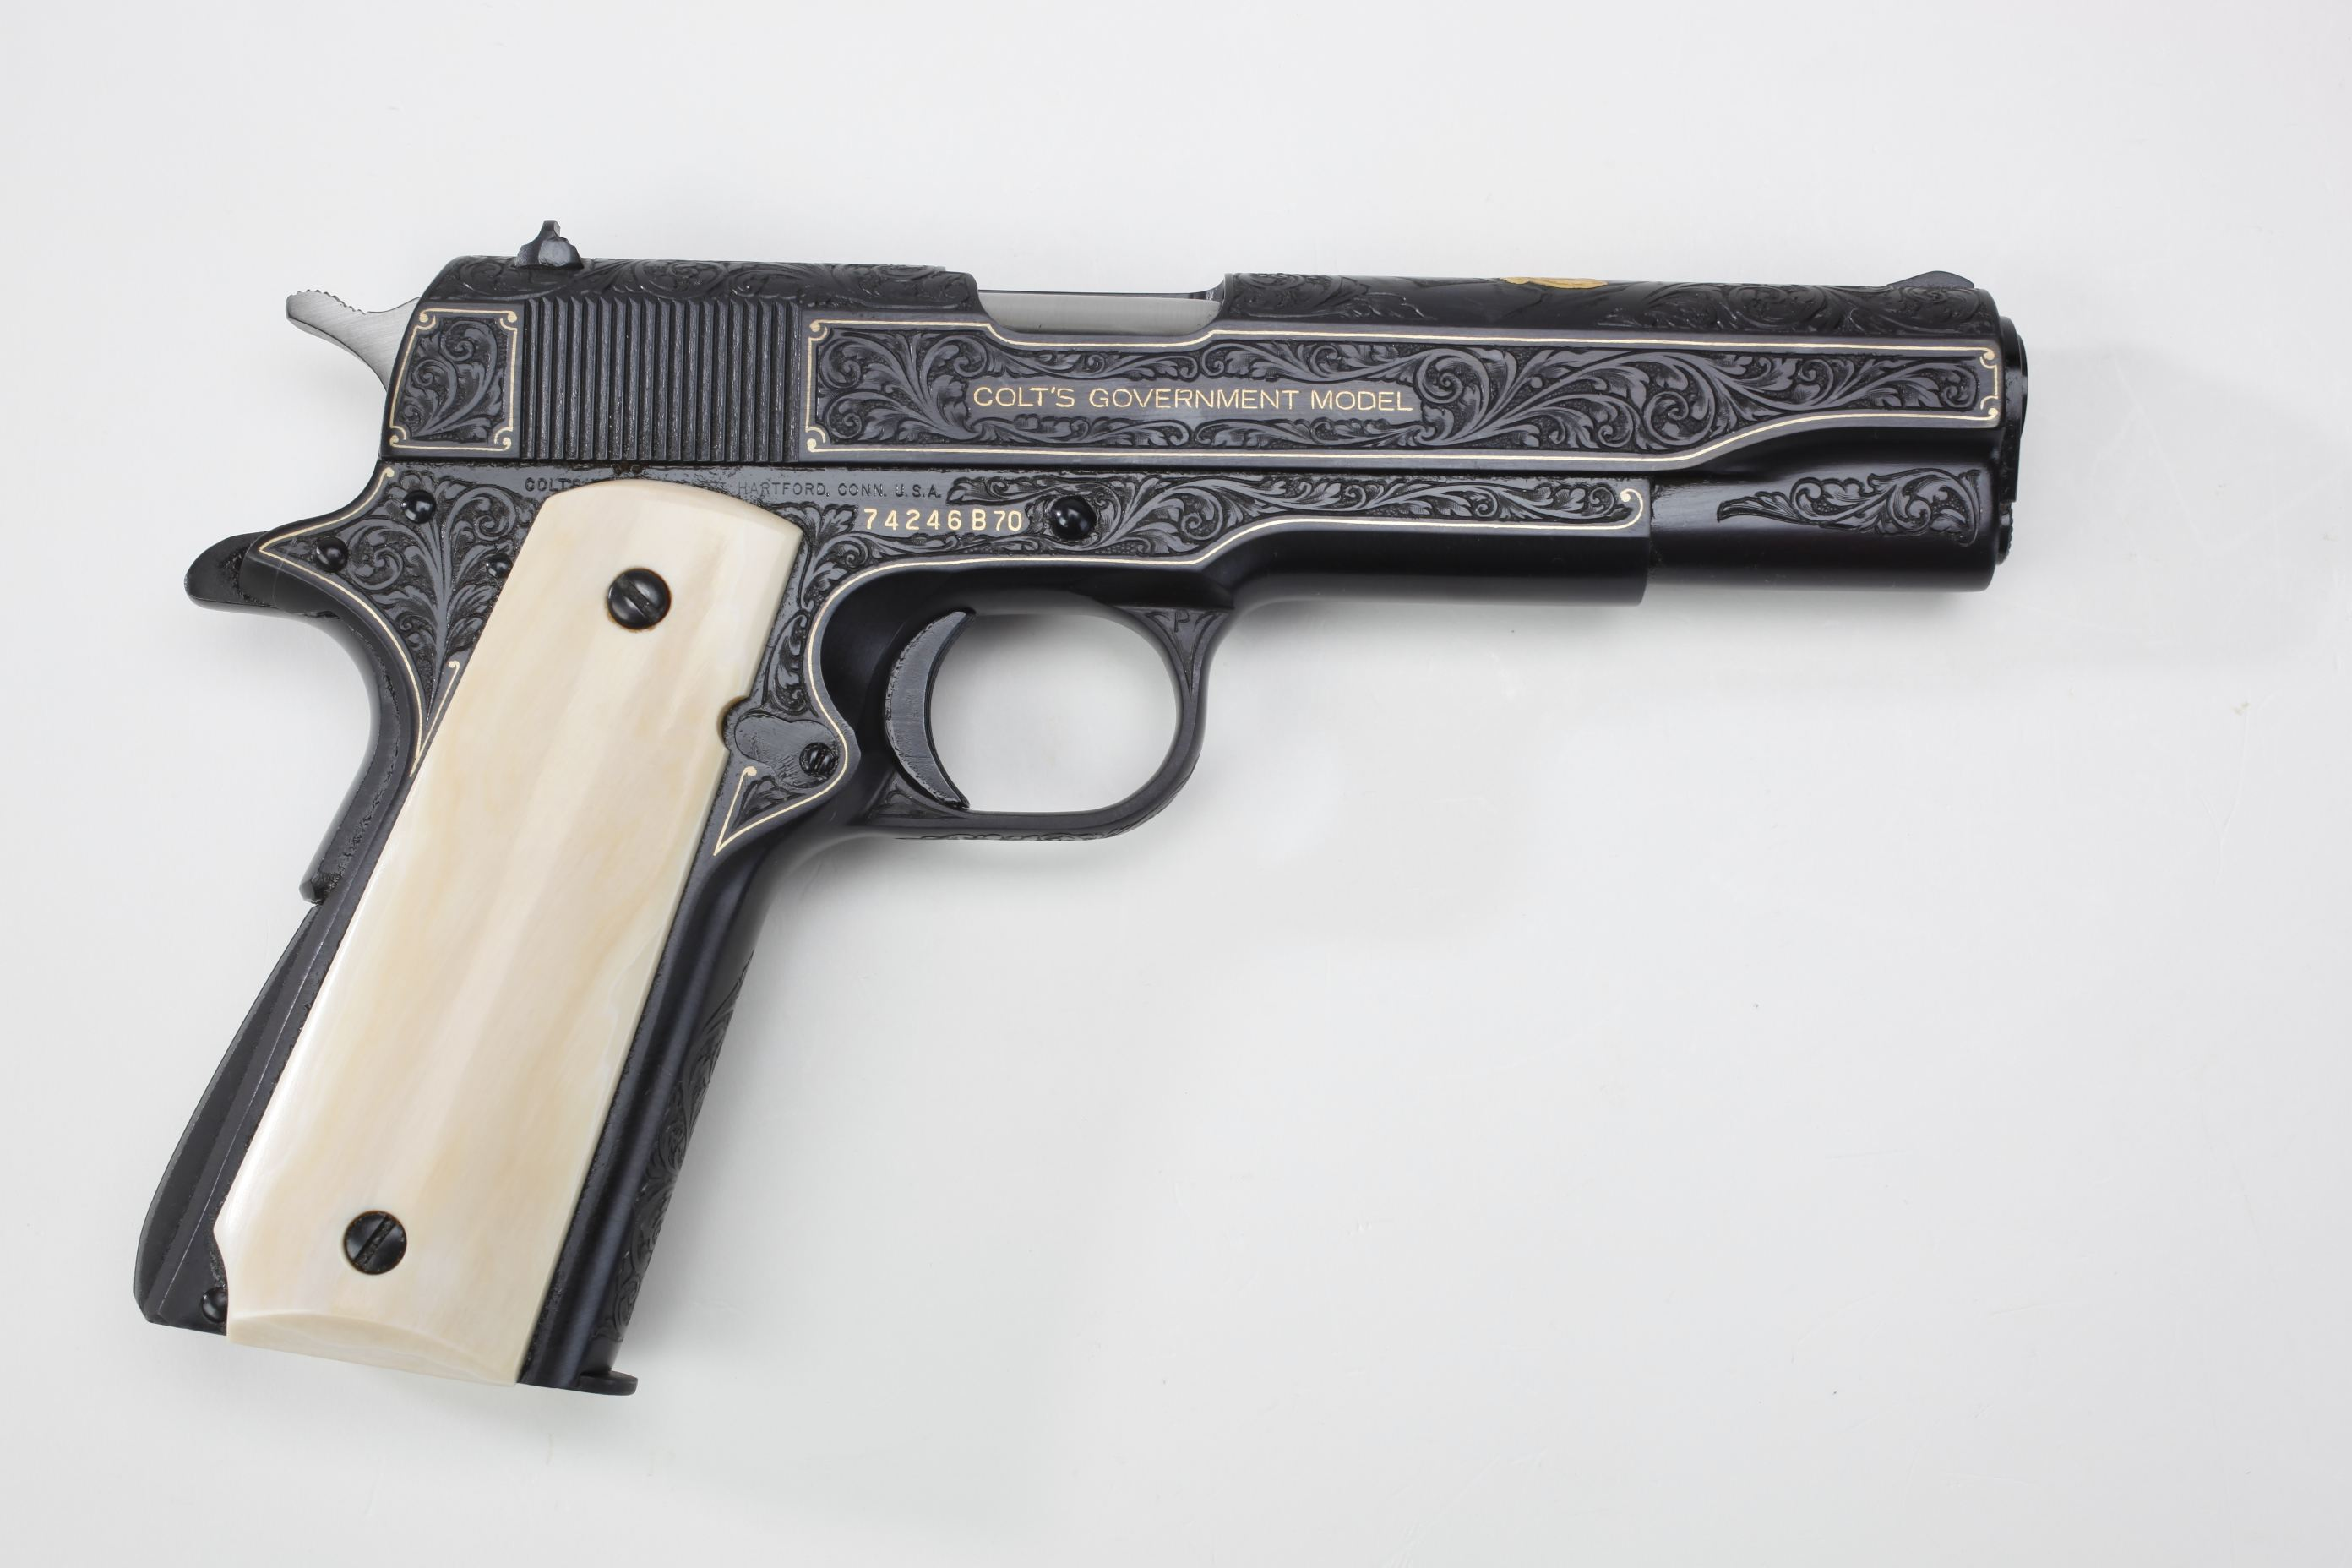 Colt (Hartford, CT) Mark IV Series 70 Semi-Automatic Pistol (1)